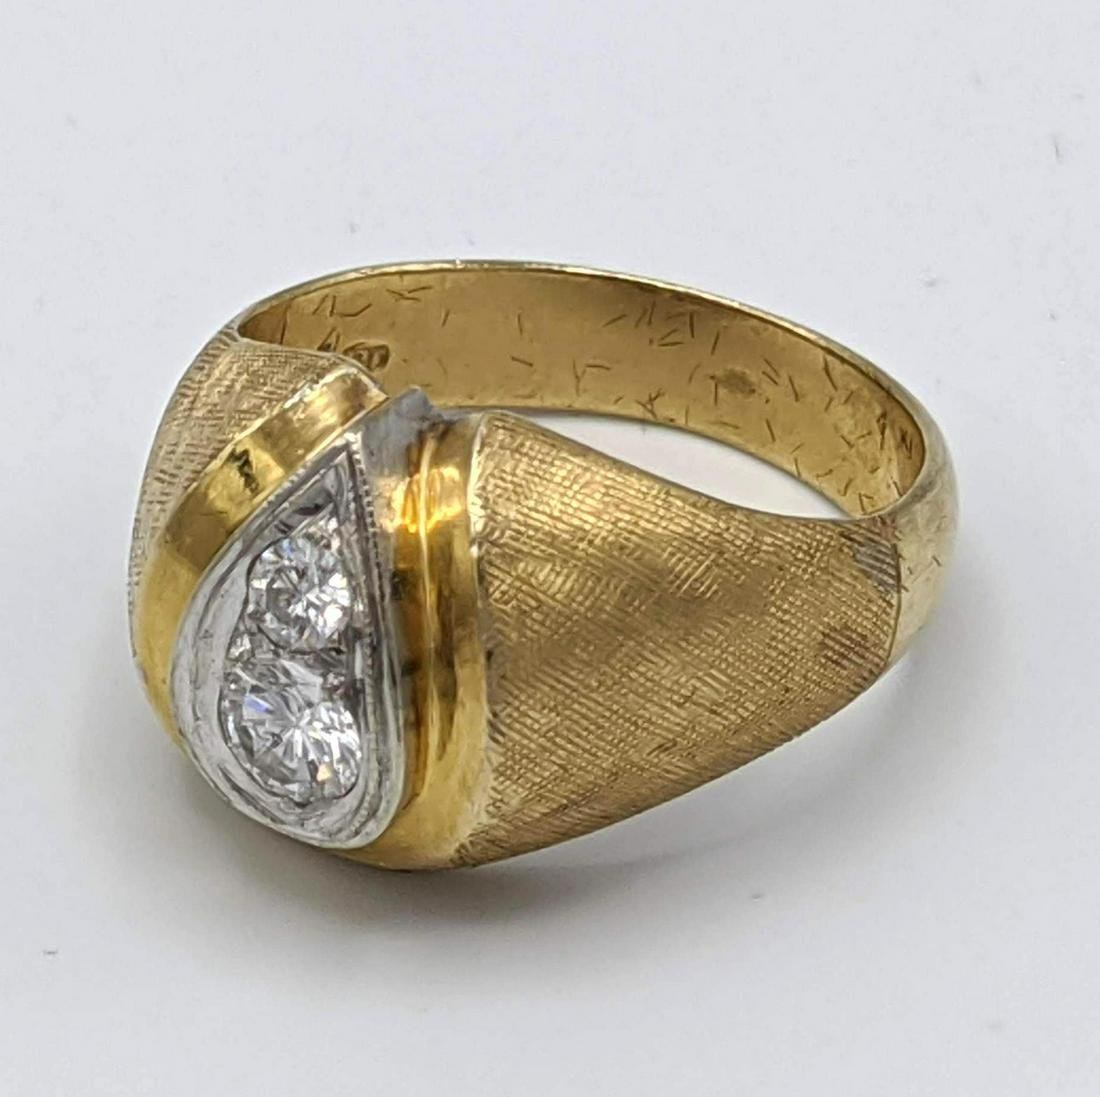 14k Gold 2 Diamond Vintage Ring.  2 diamonds mounted in